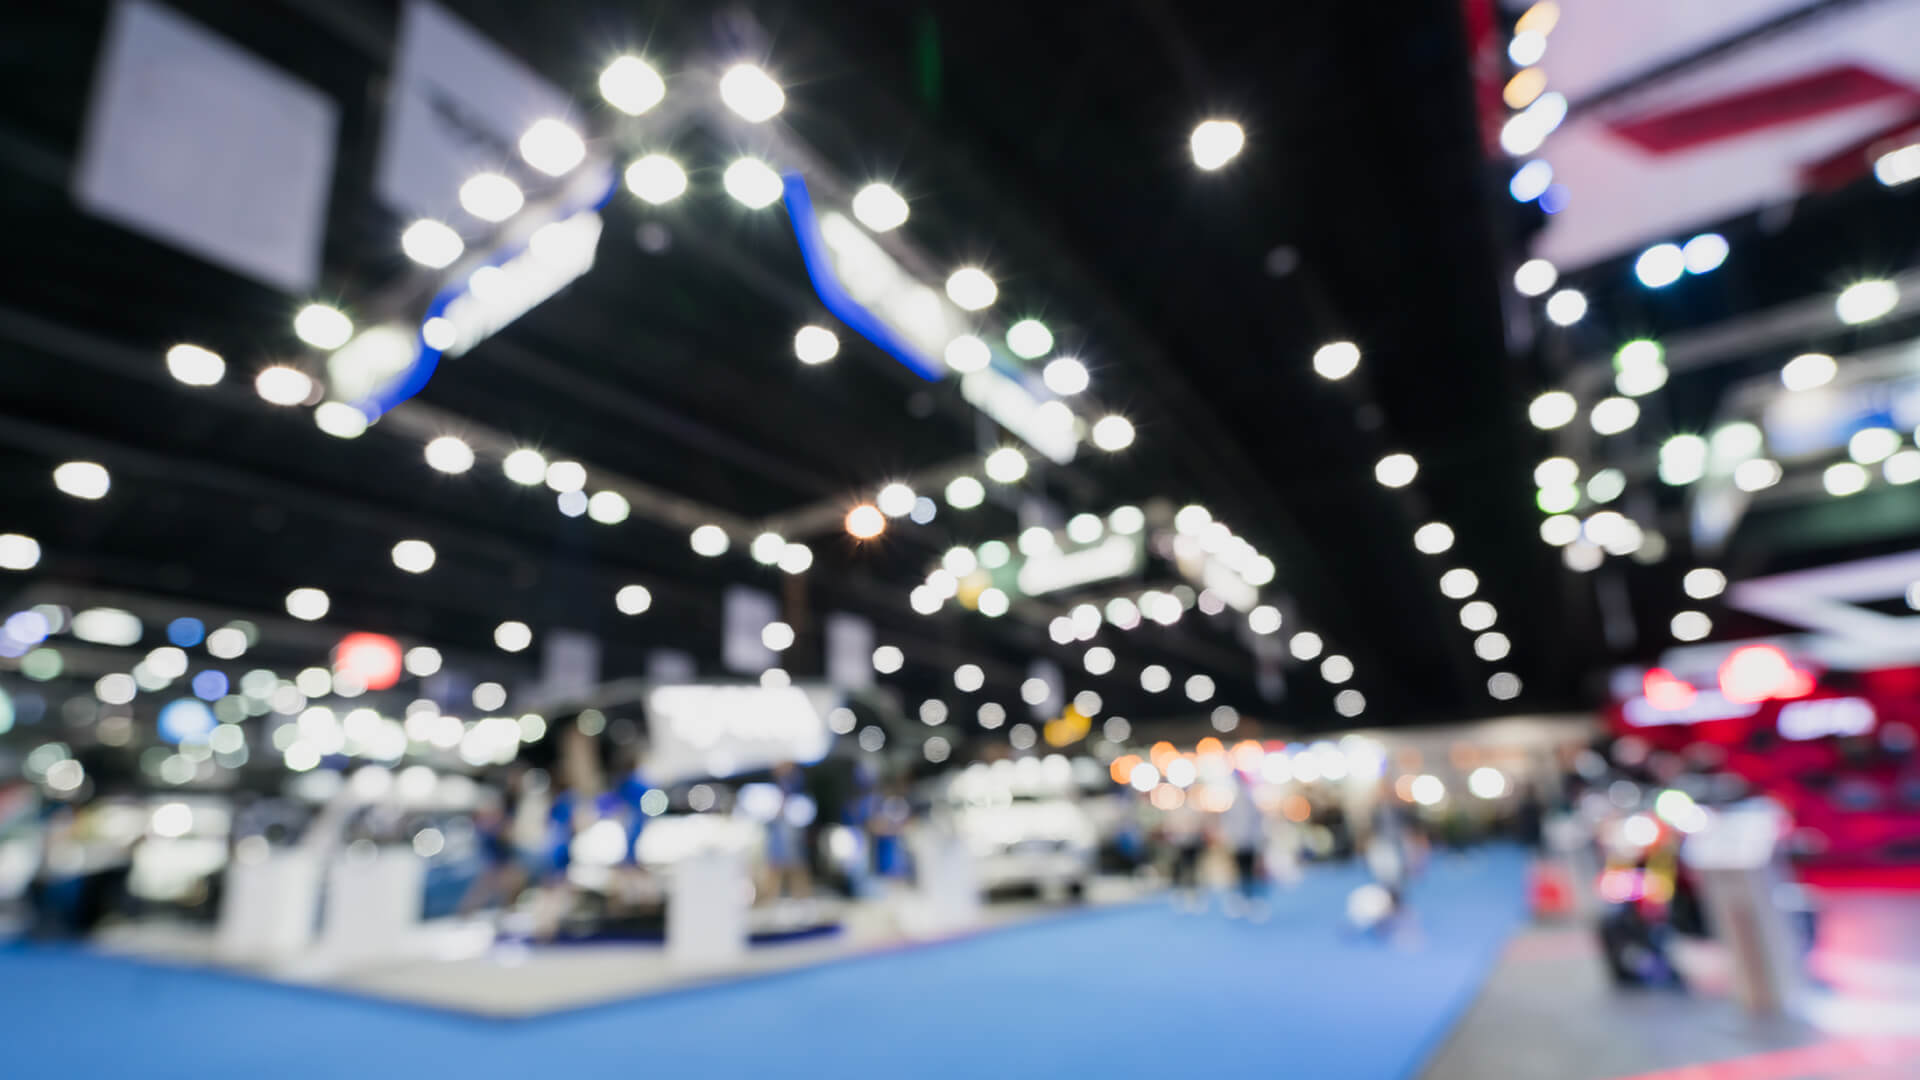 5 Ways To Stand Out At Your Next Trade Show